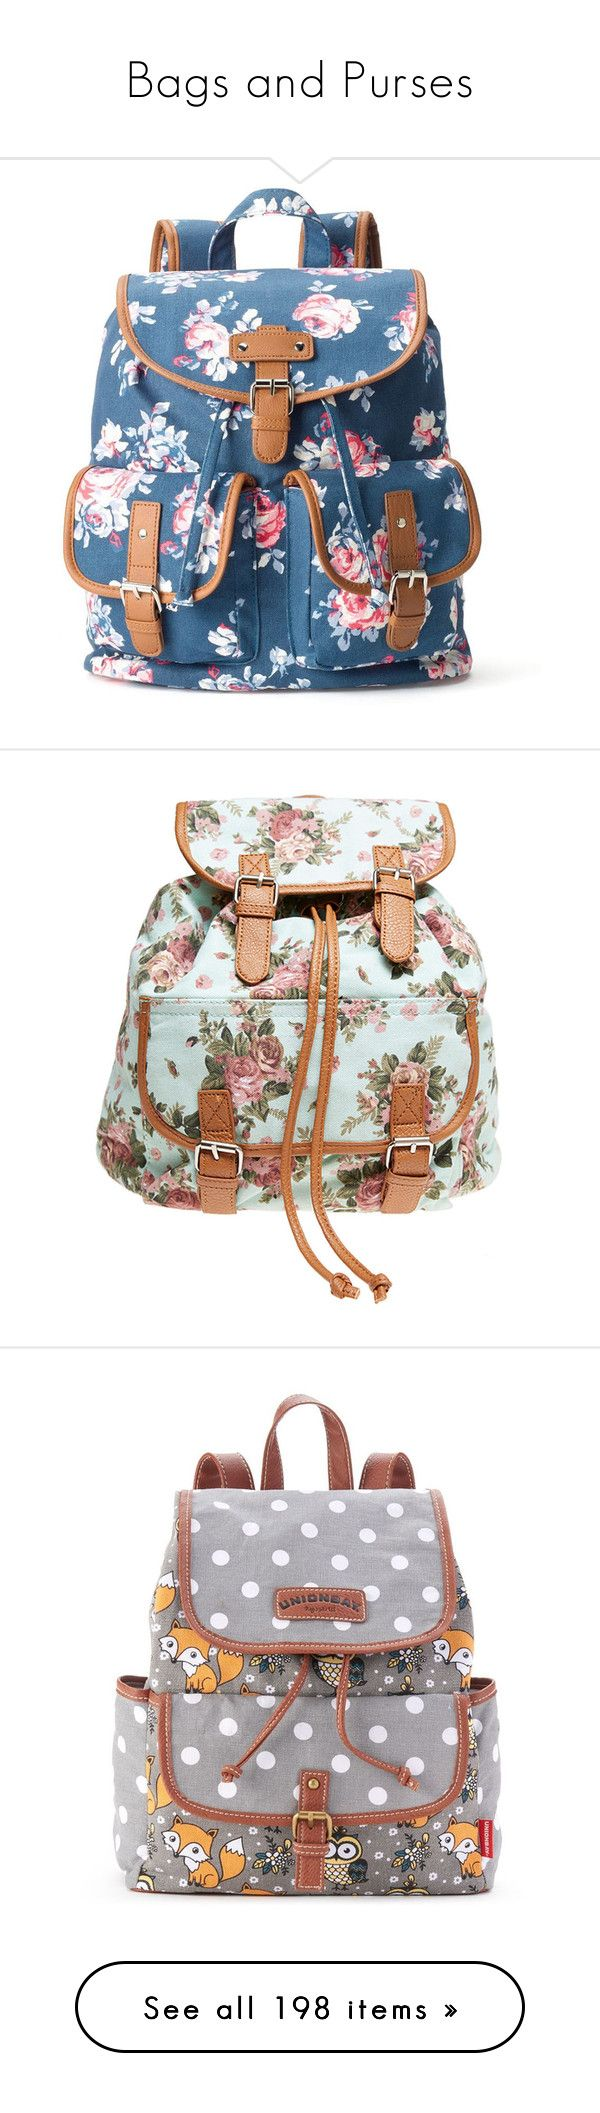 """Bags and Purses"" by knight-of-breath ❤ liked on Polyvore featuring bags, backpacks, accessories, blue, floral backpacks, draw string bag, floral pattern backpack, day pack backpack, backpack bags and backpack"